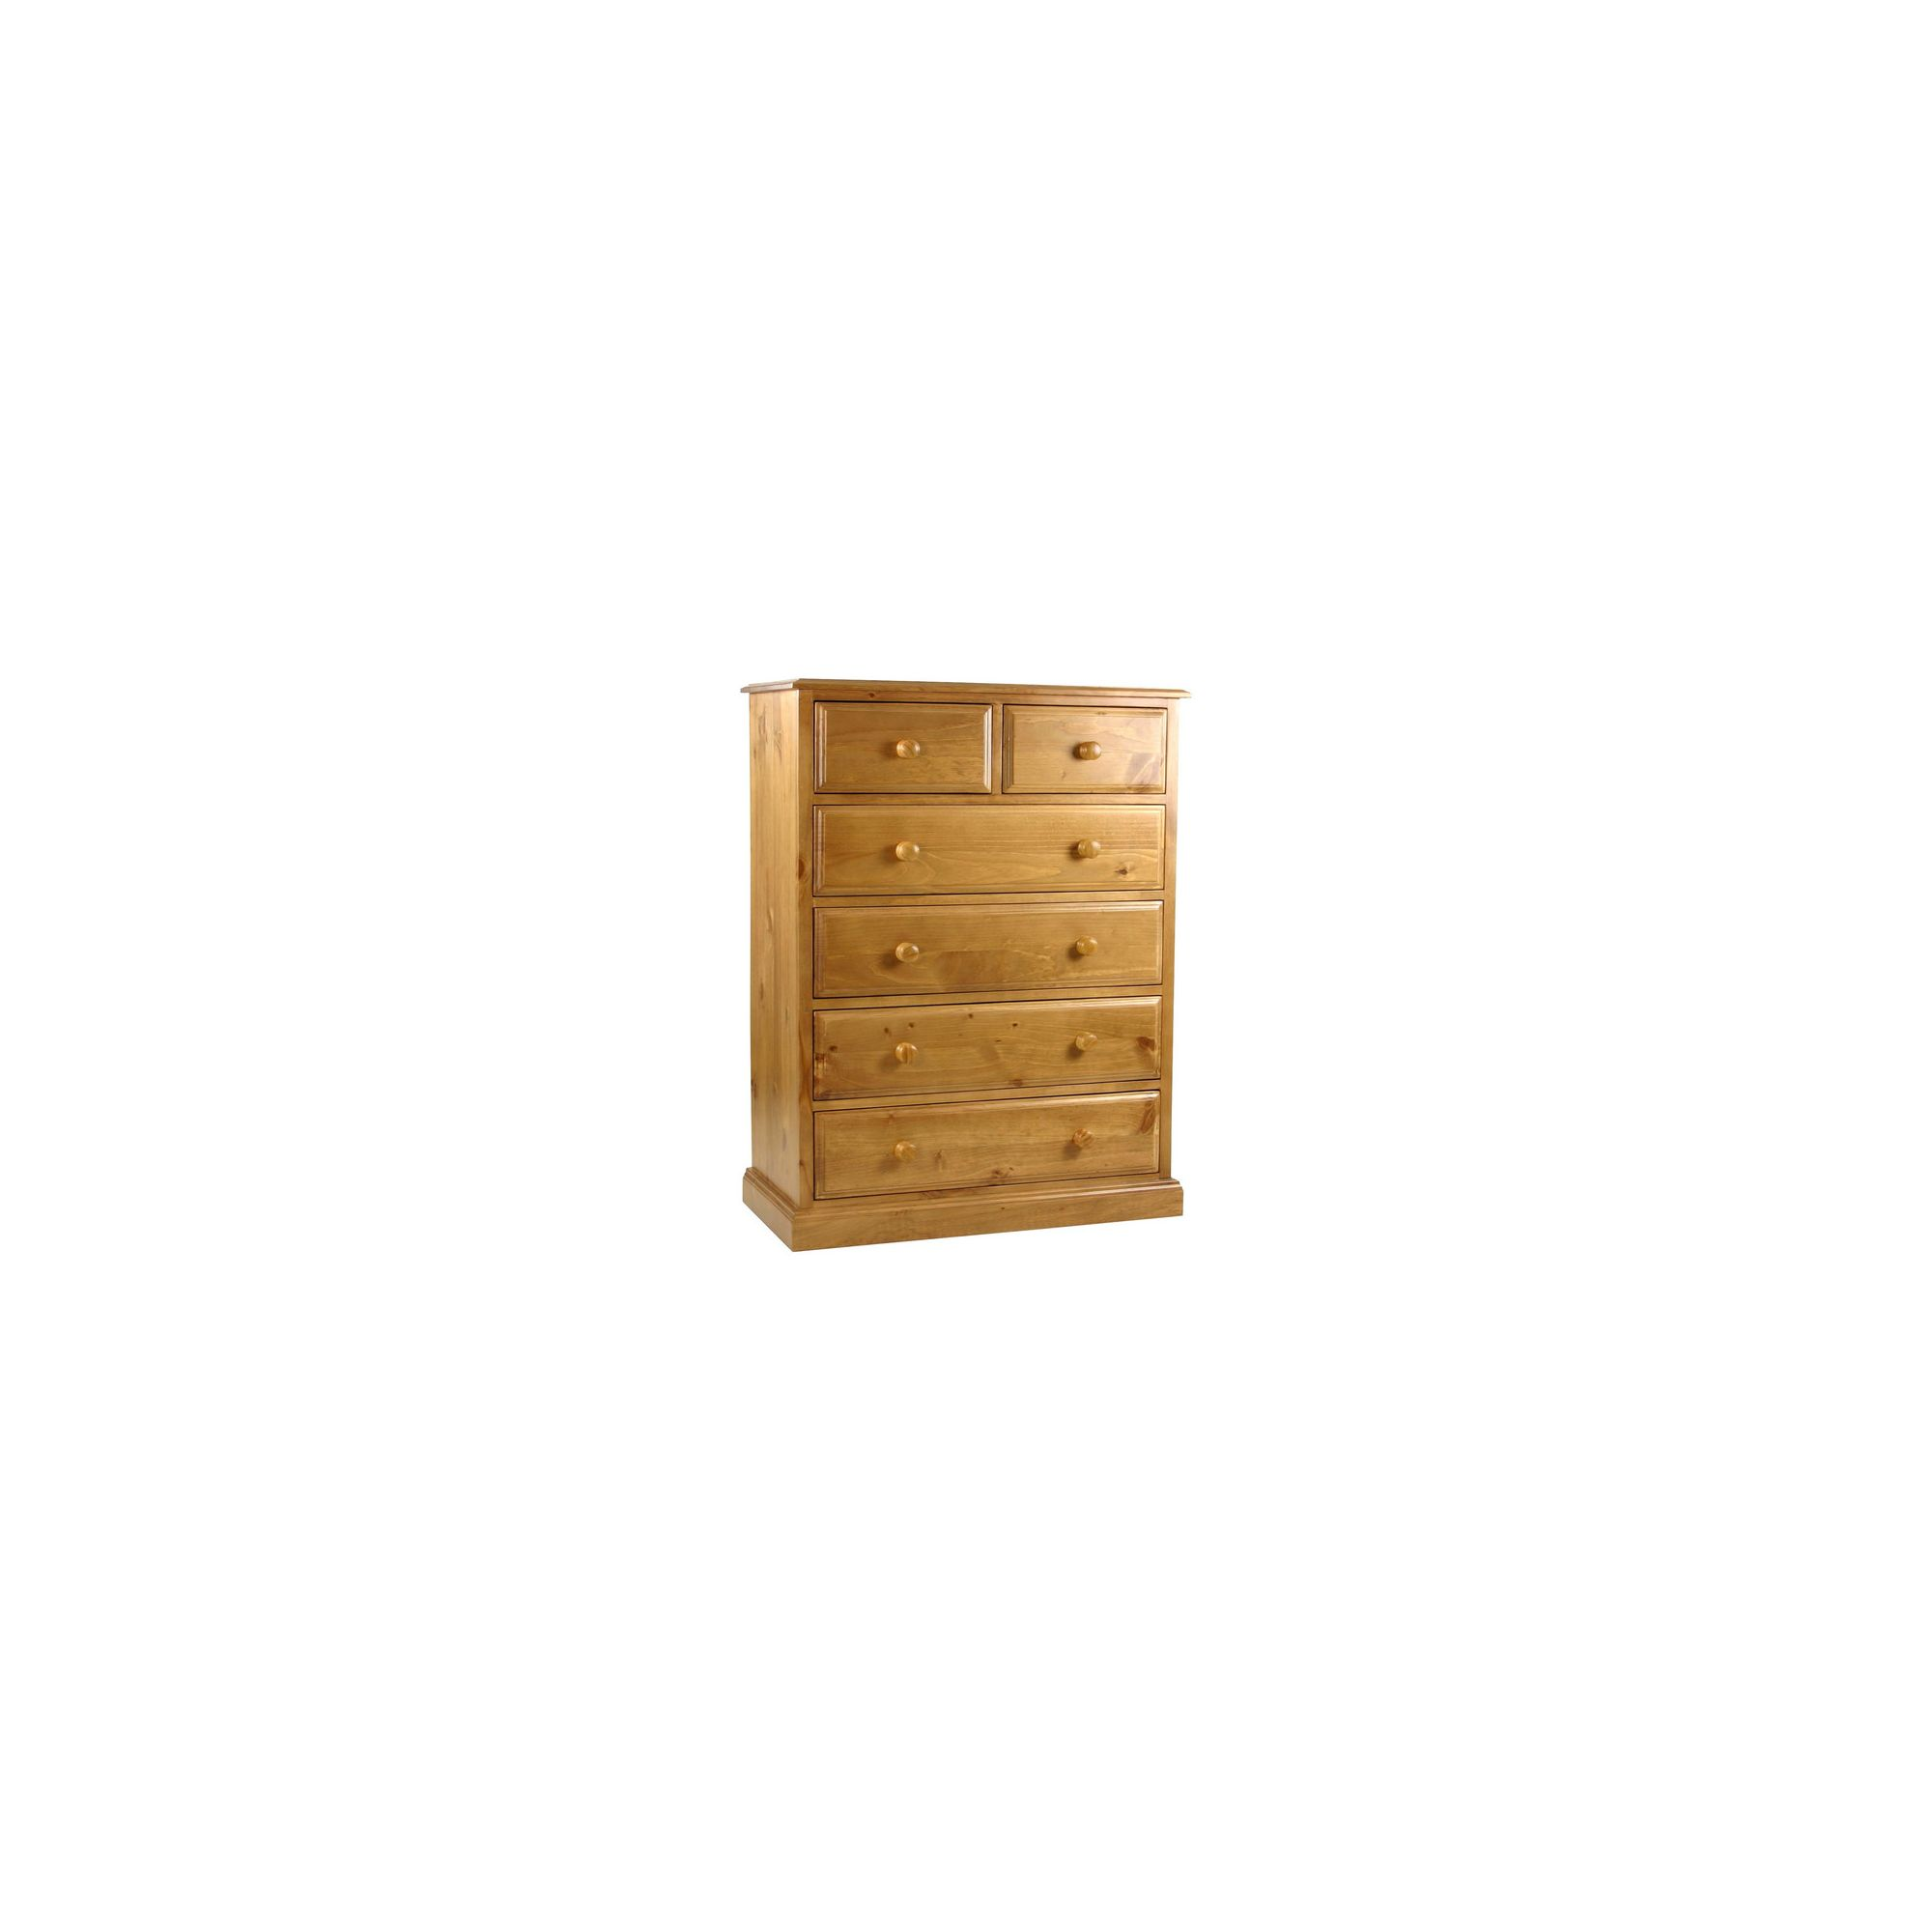 Kelburn Furniture Pine 2 Over 4 Drawer Large Chest in Antique Wax Lacquer at Tescos Direct